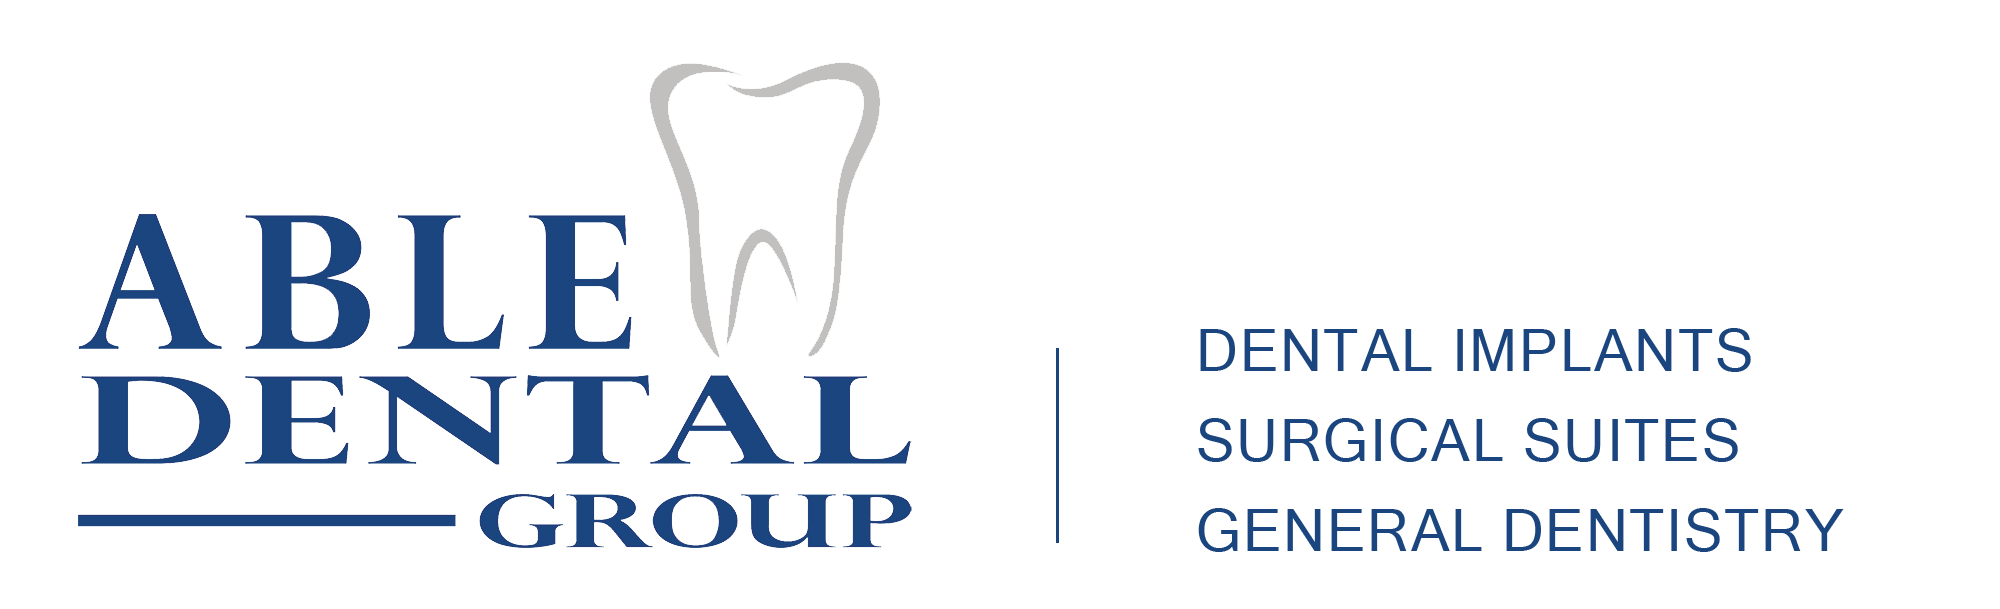 Able Dental Group